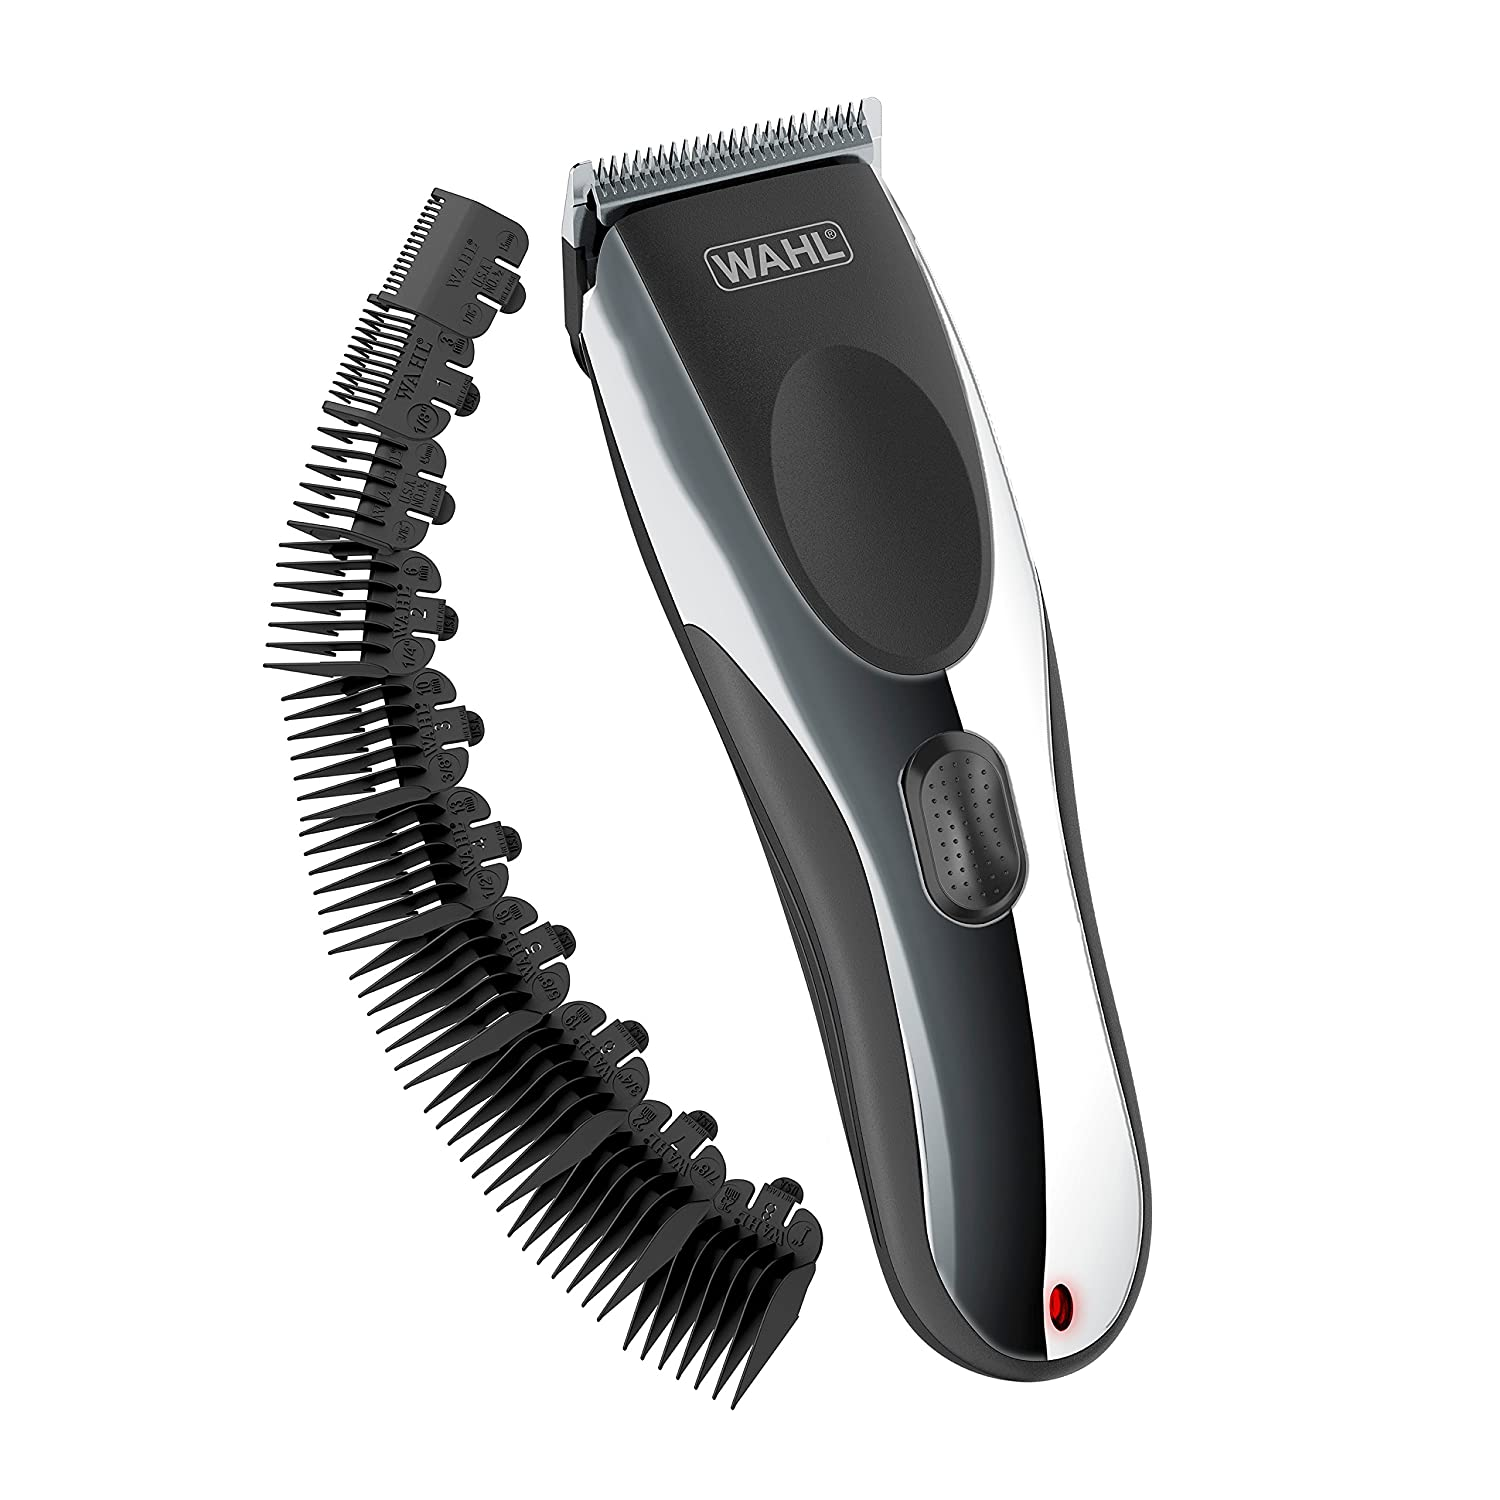 Wahl Clipper Rechargeable Cord/Cordless Haircutting Kit 79434 Cord/Cordless Rechargeable Grooming Kit, Clippers for Haircutting and Beard Trimming